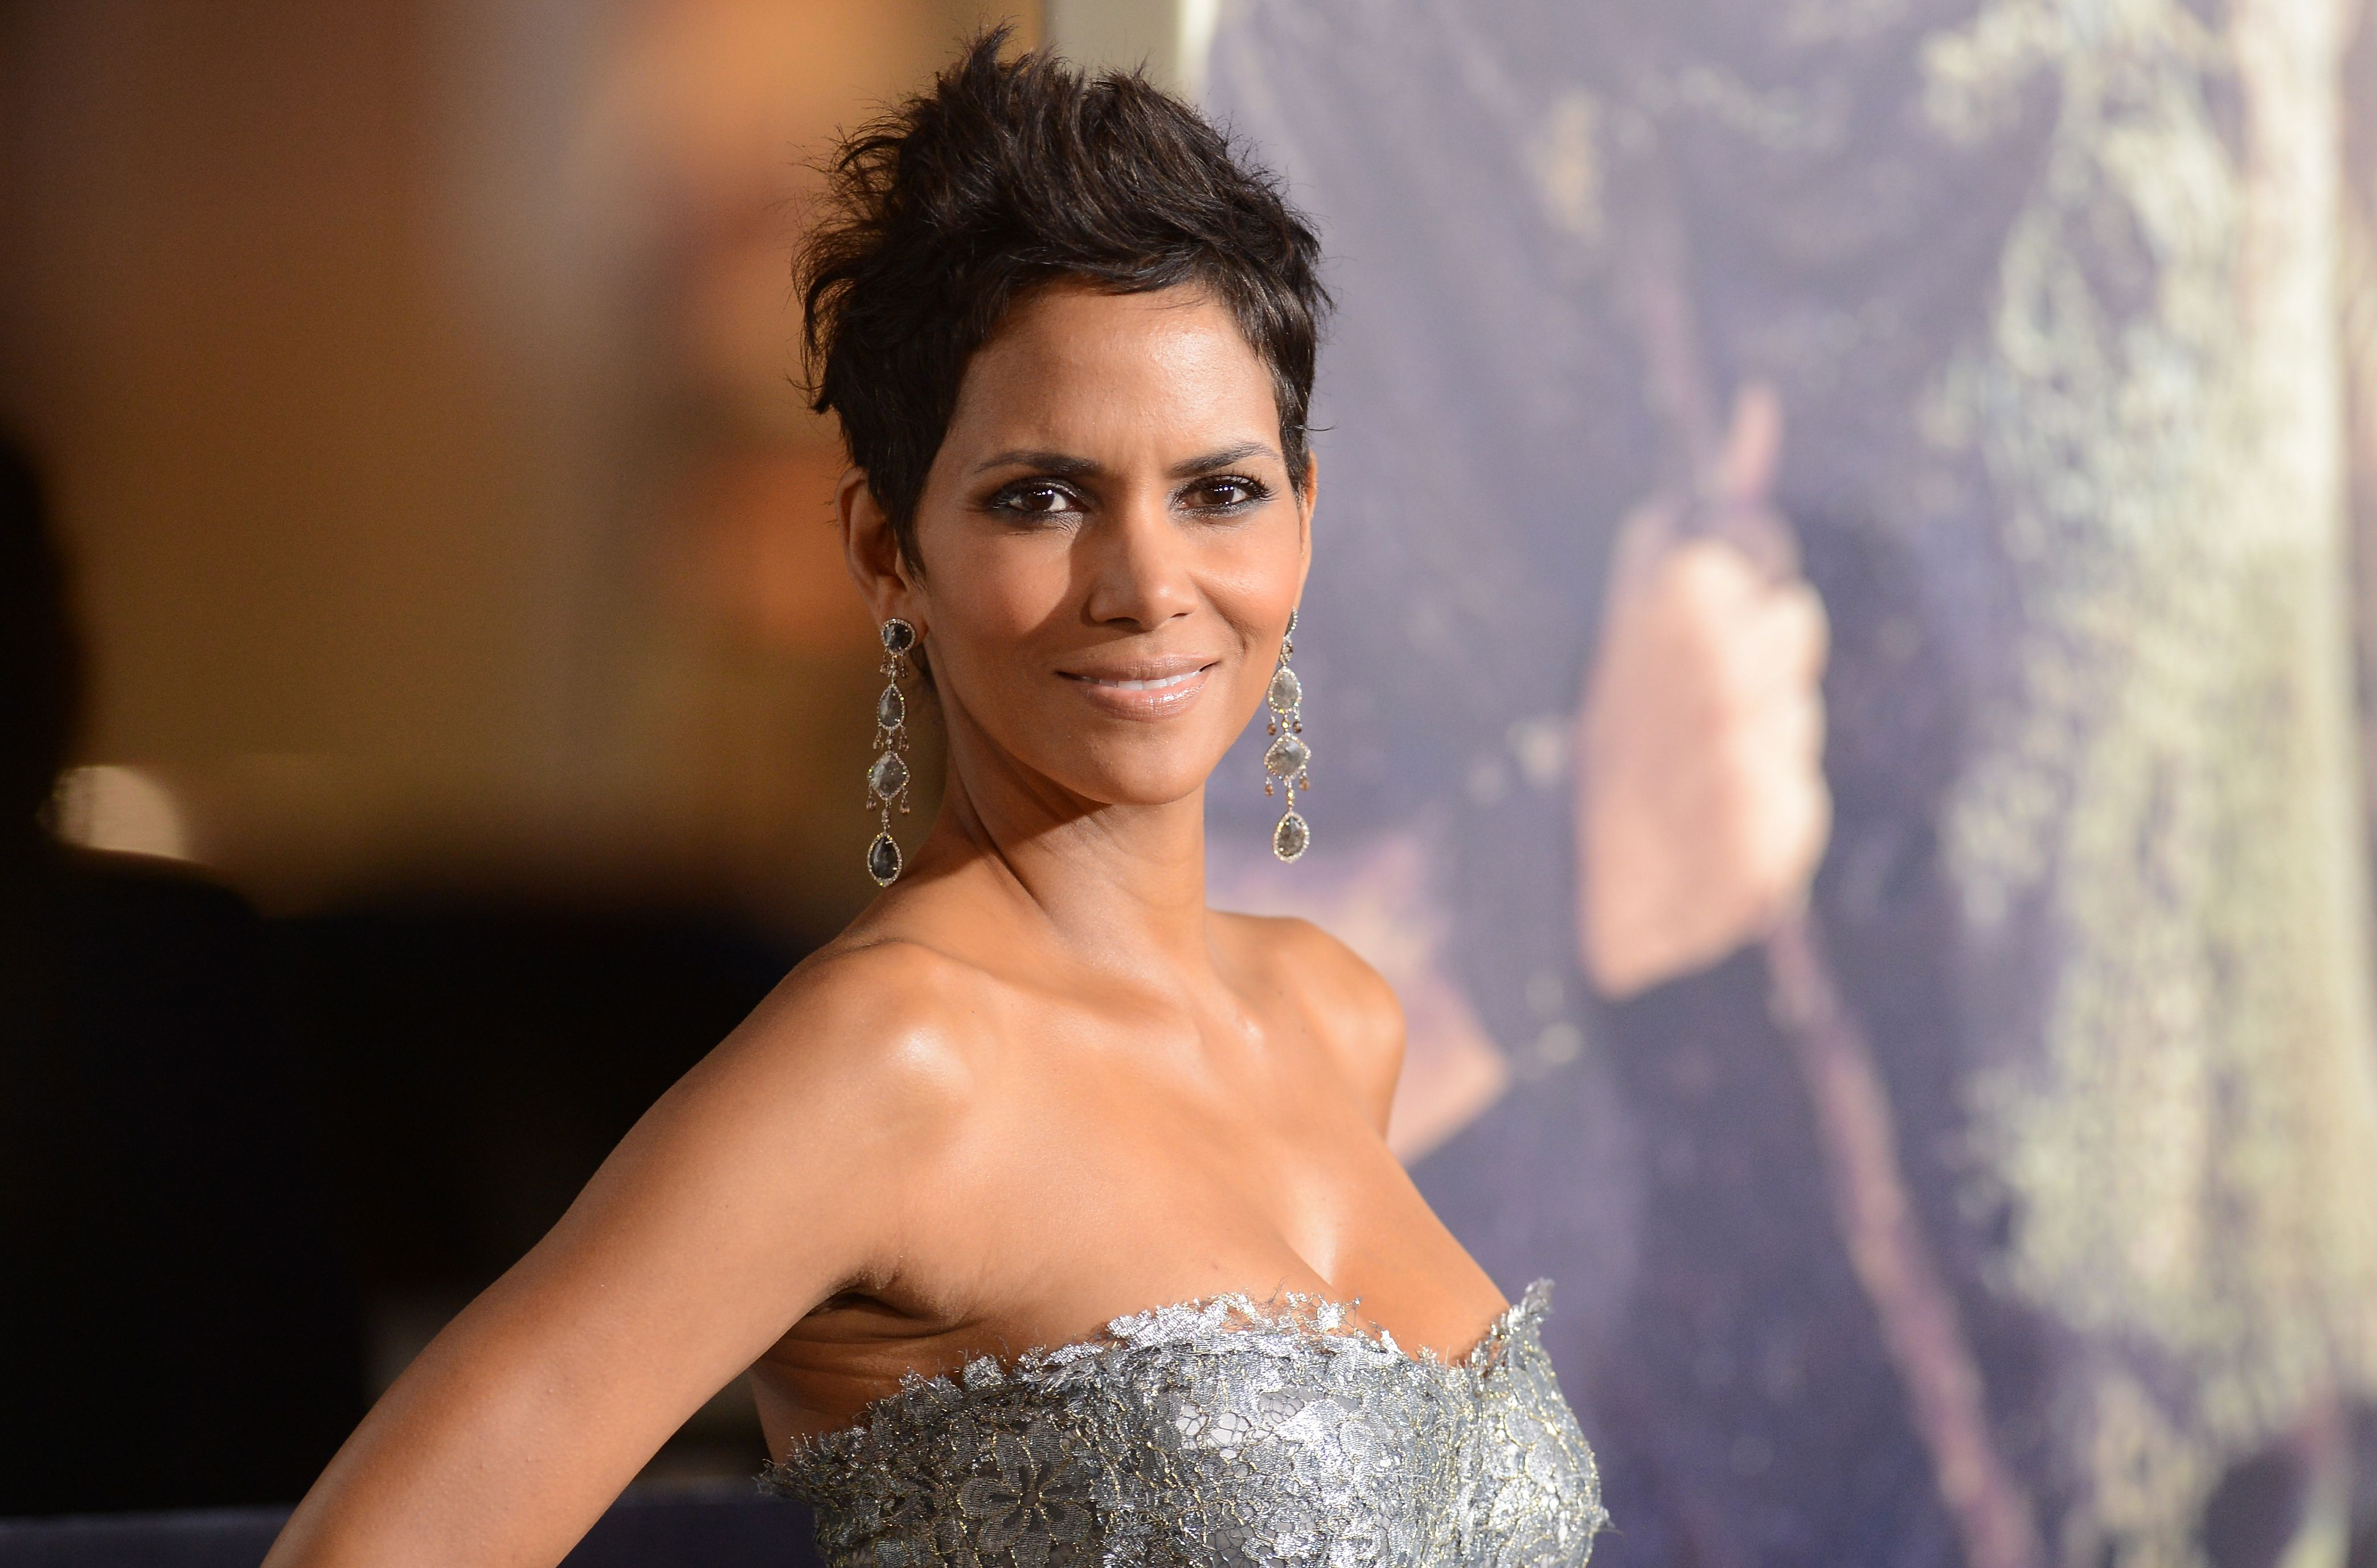 """Halle Berry at Warner Bros. Pictures' """"Cloud Atlas"""" premiere at Grauman's Chinese Theatre on October 24, 2012 in Hollywood, California 